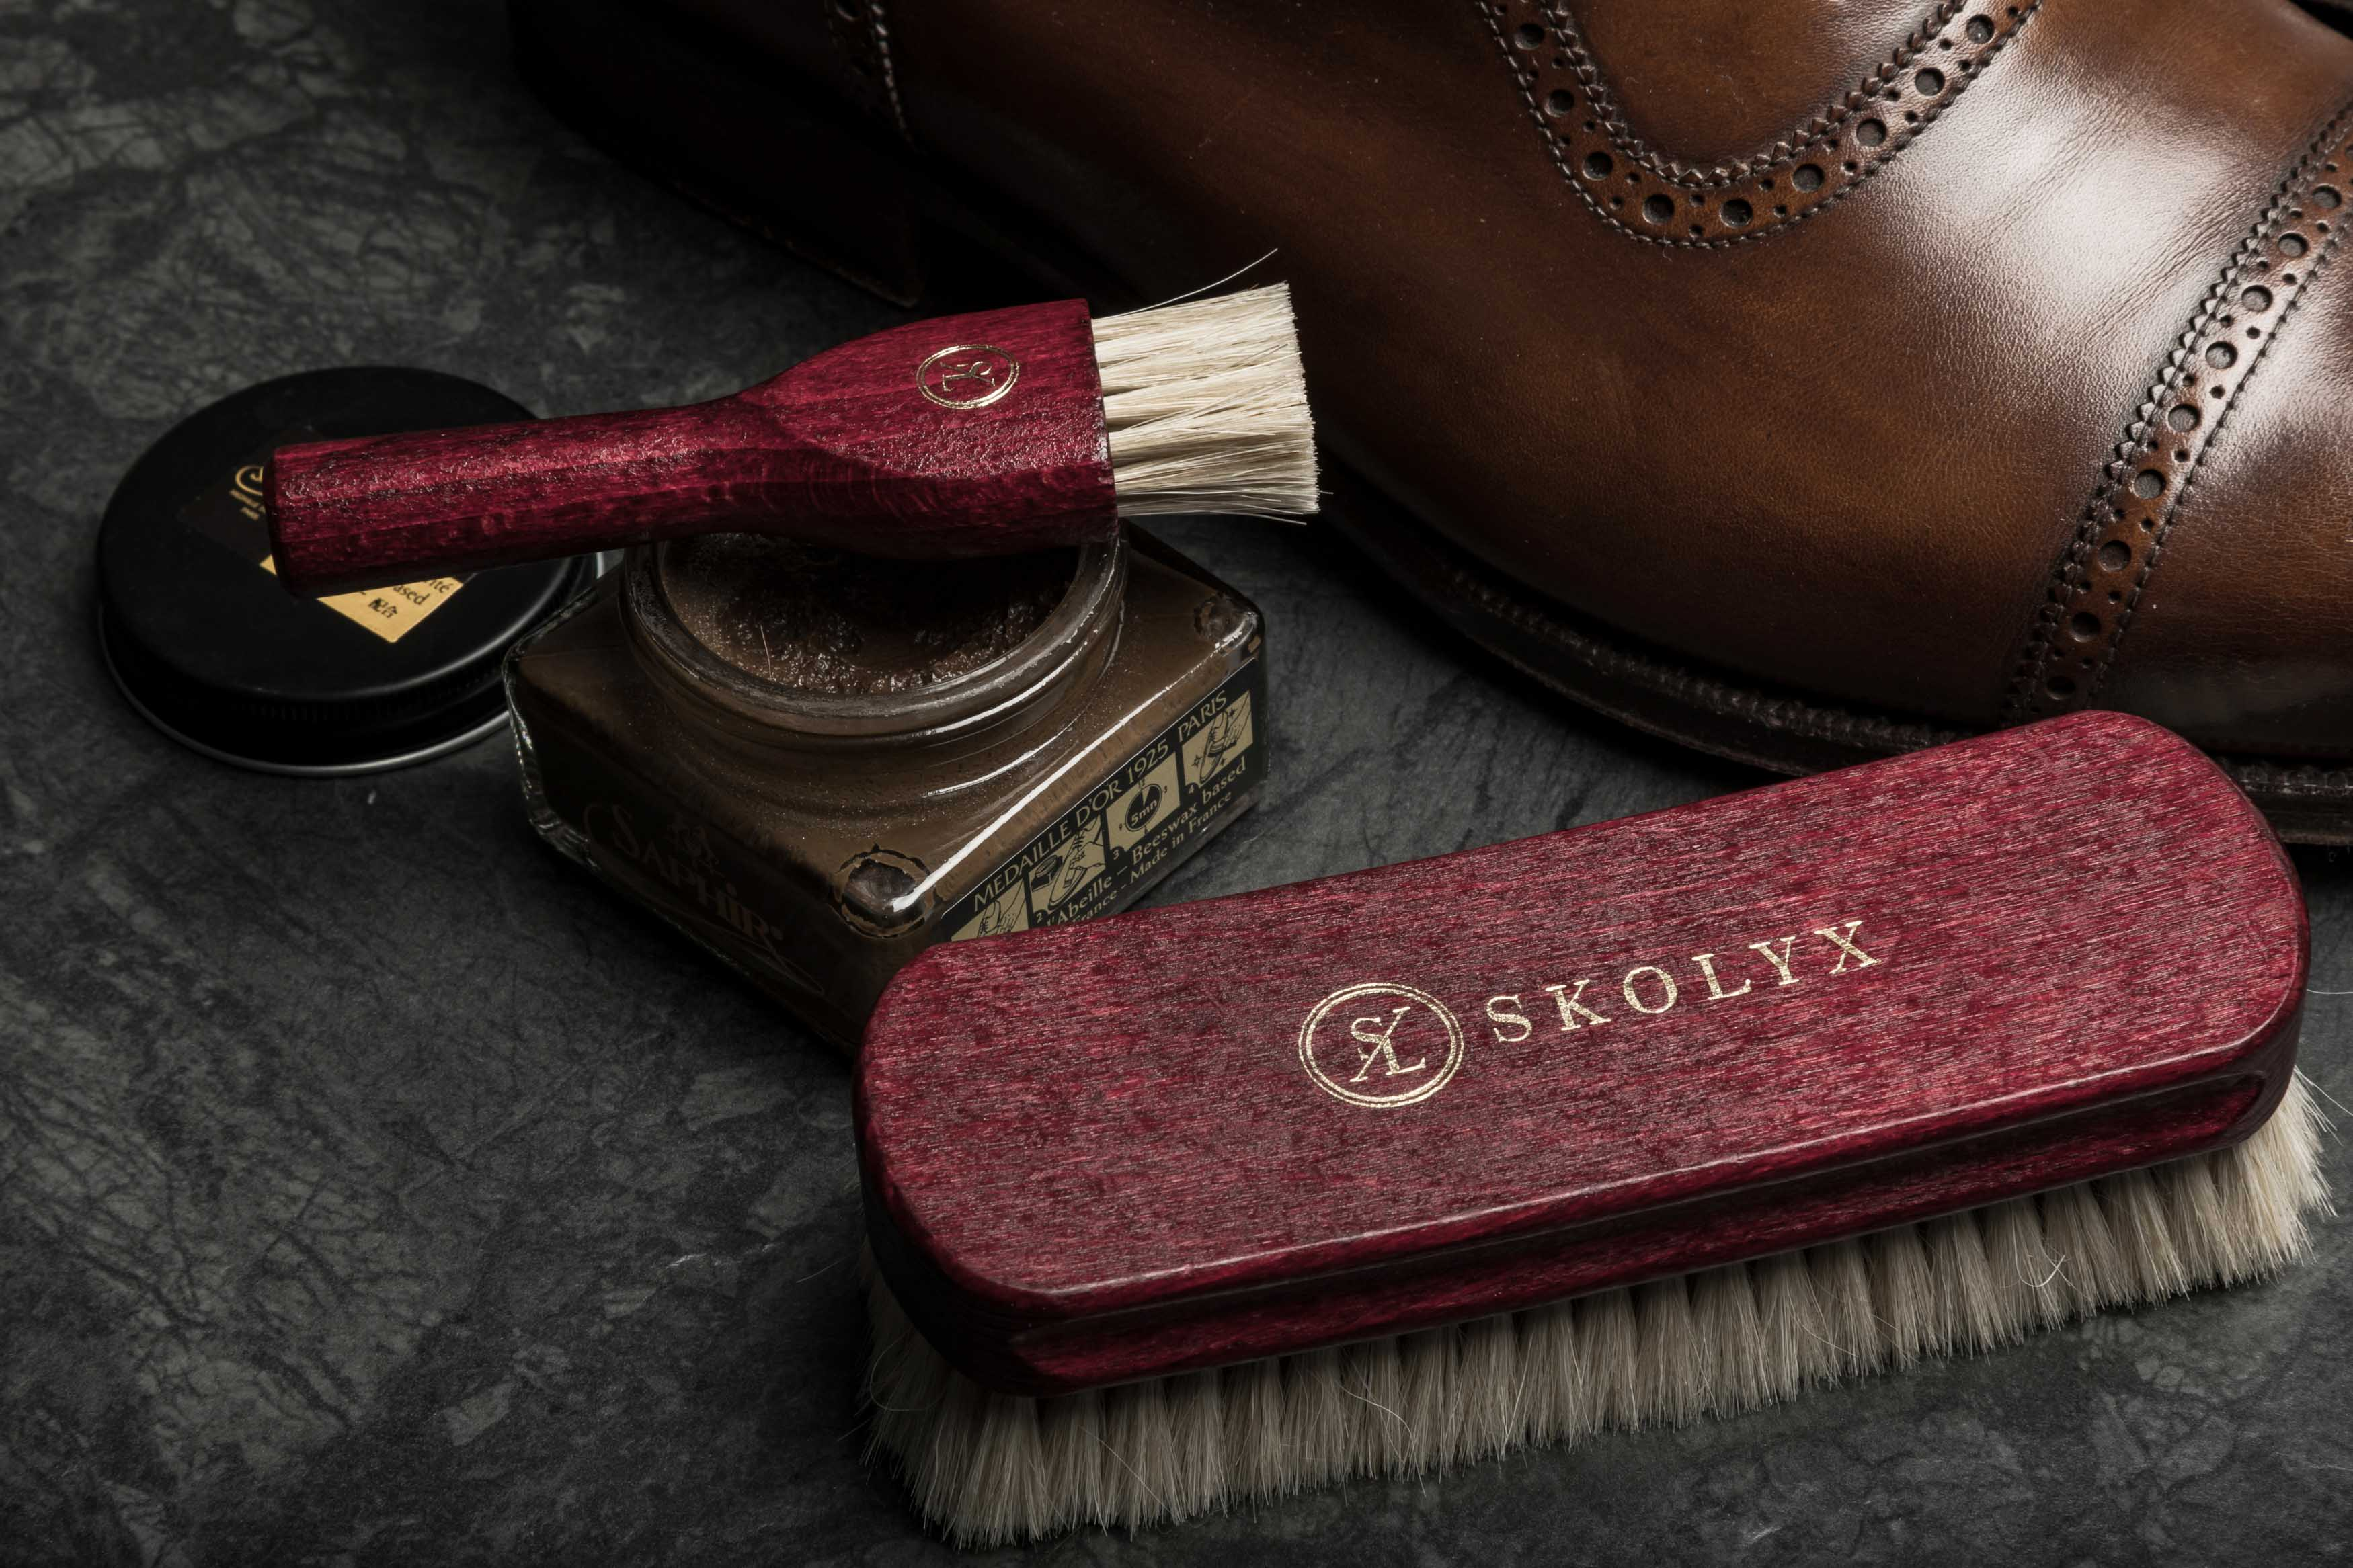 Guide - Saphir Medaille d'Or colours